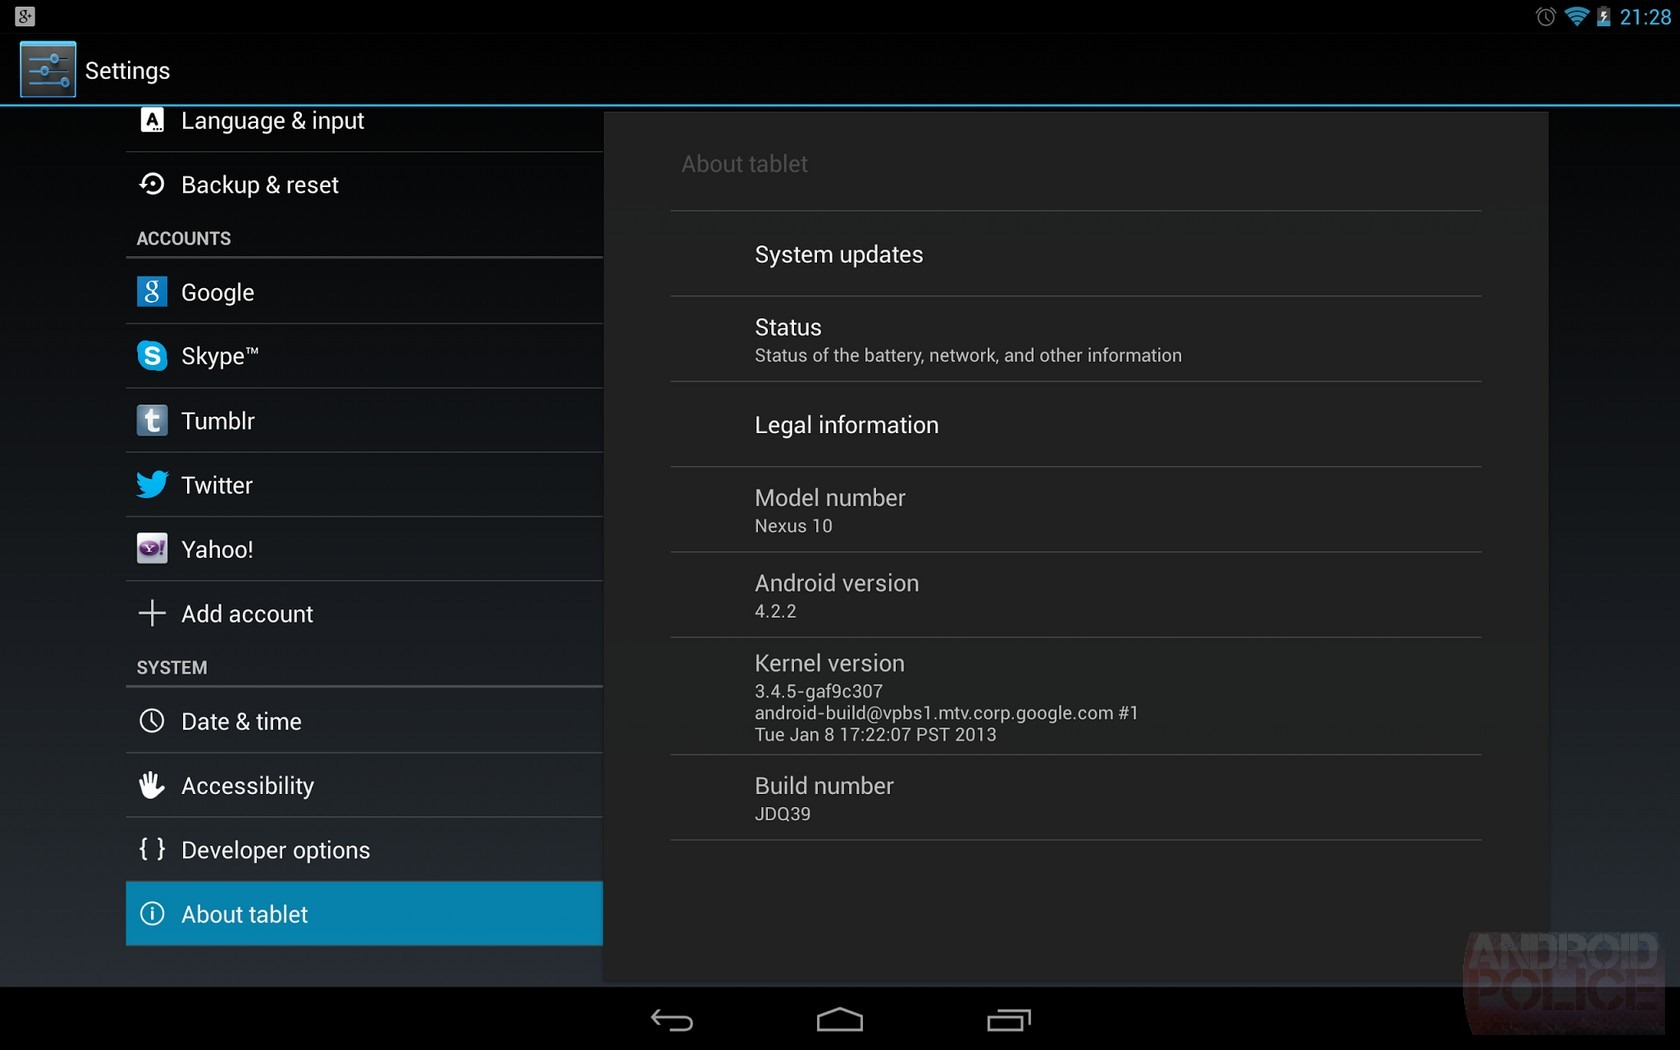 Android 4.2.2 Google Nexus 10